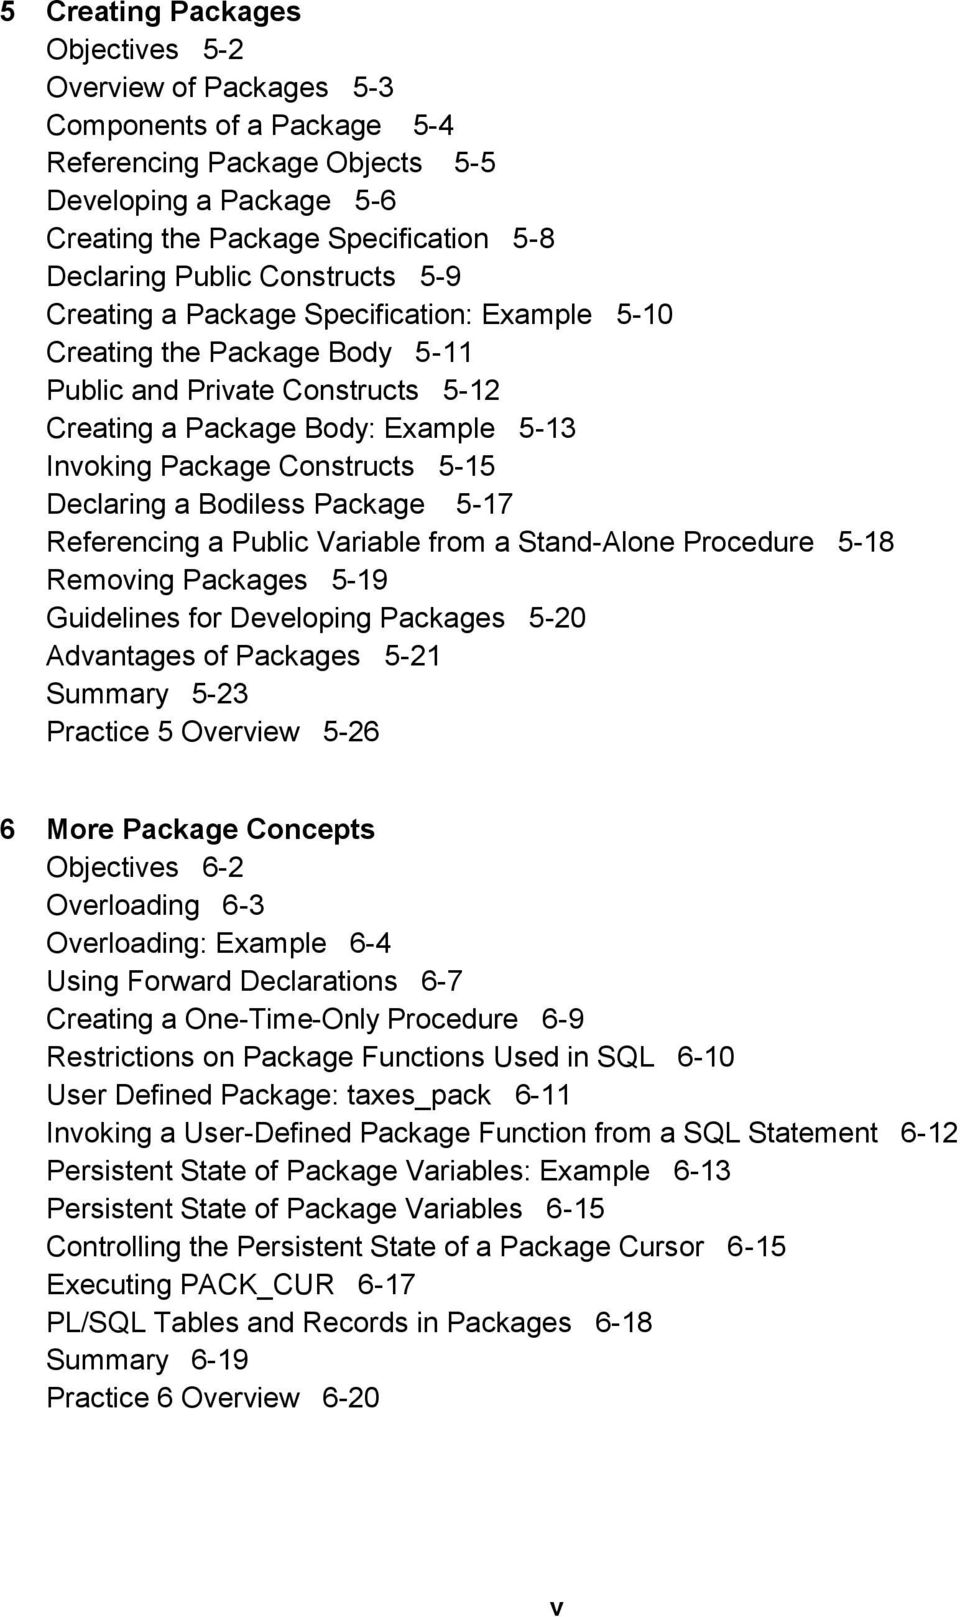 Constructs 5-15 Declaring a Bodiless Package 5-17 Referencing a Public Variable from a Stand-Alone Procedure 5-18 Removing Packages 5-19 Guidelines for Developing Packages 5-20 Advantages of Packages